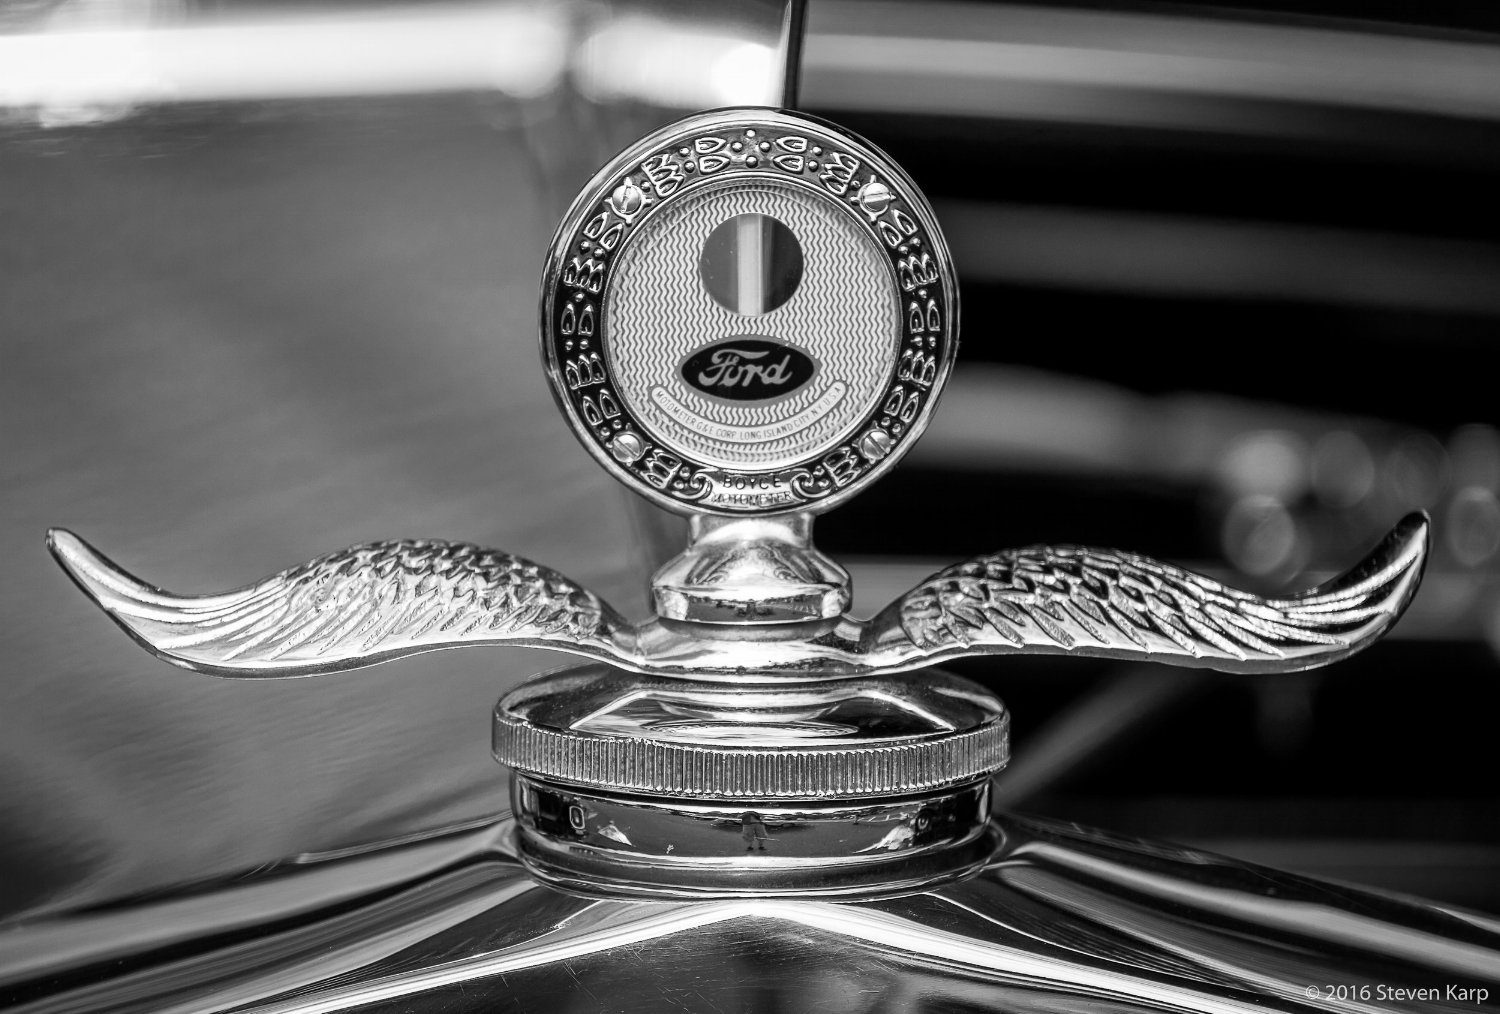 Ford Model A Hood Ornament